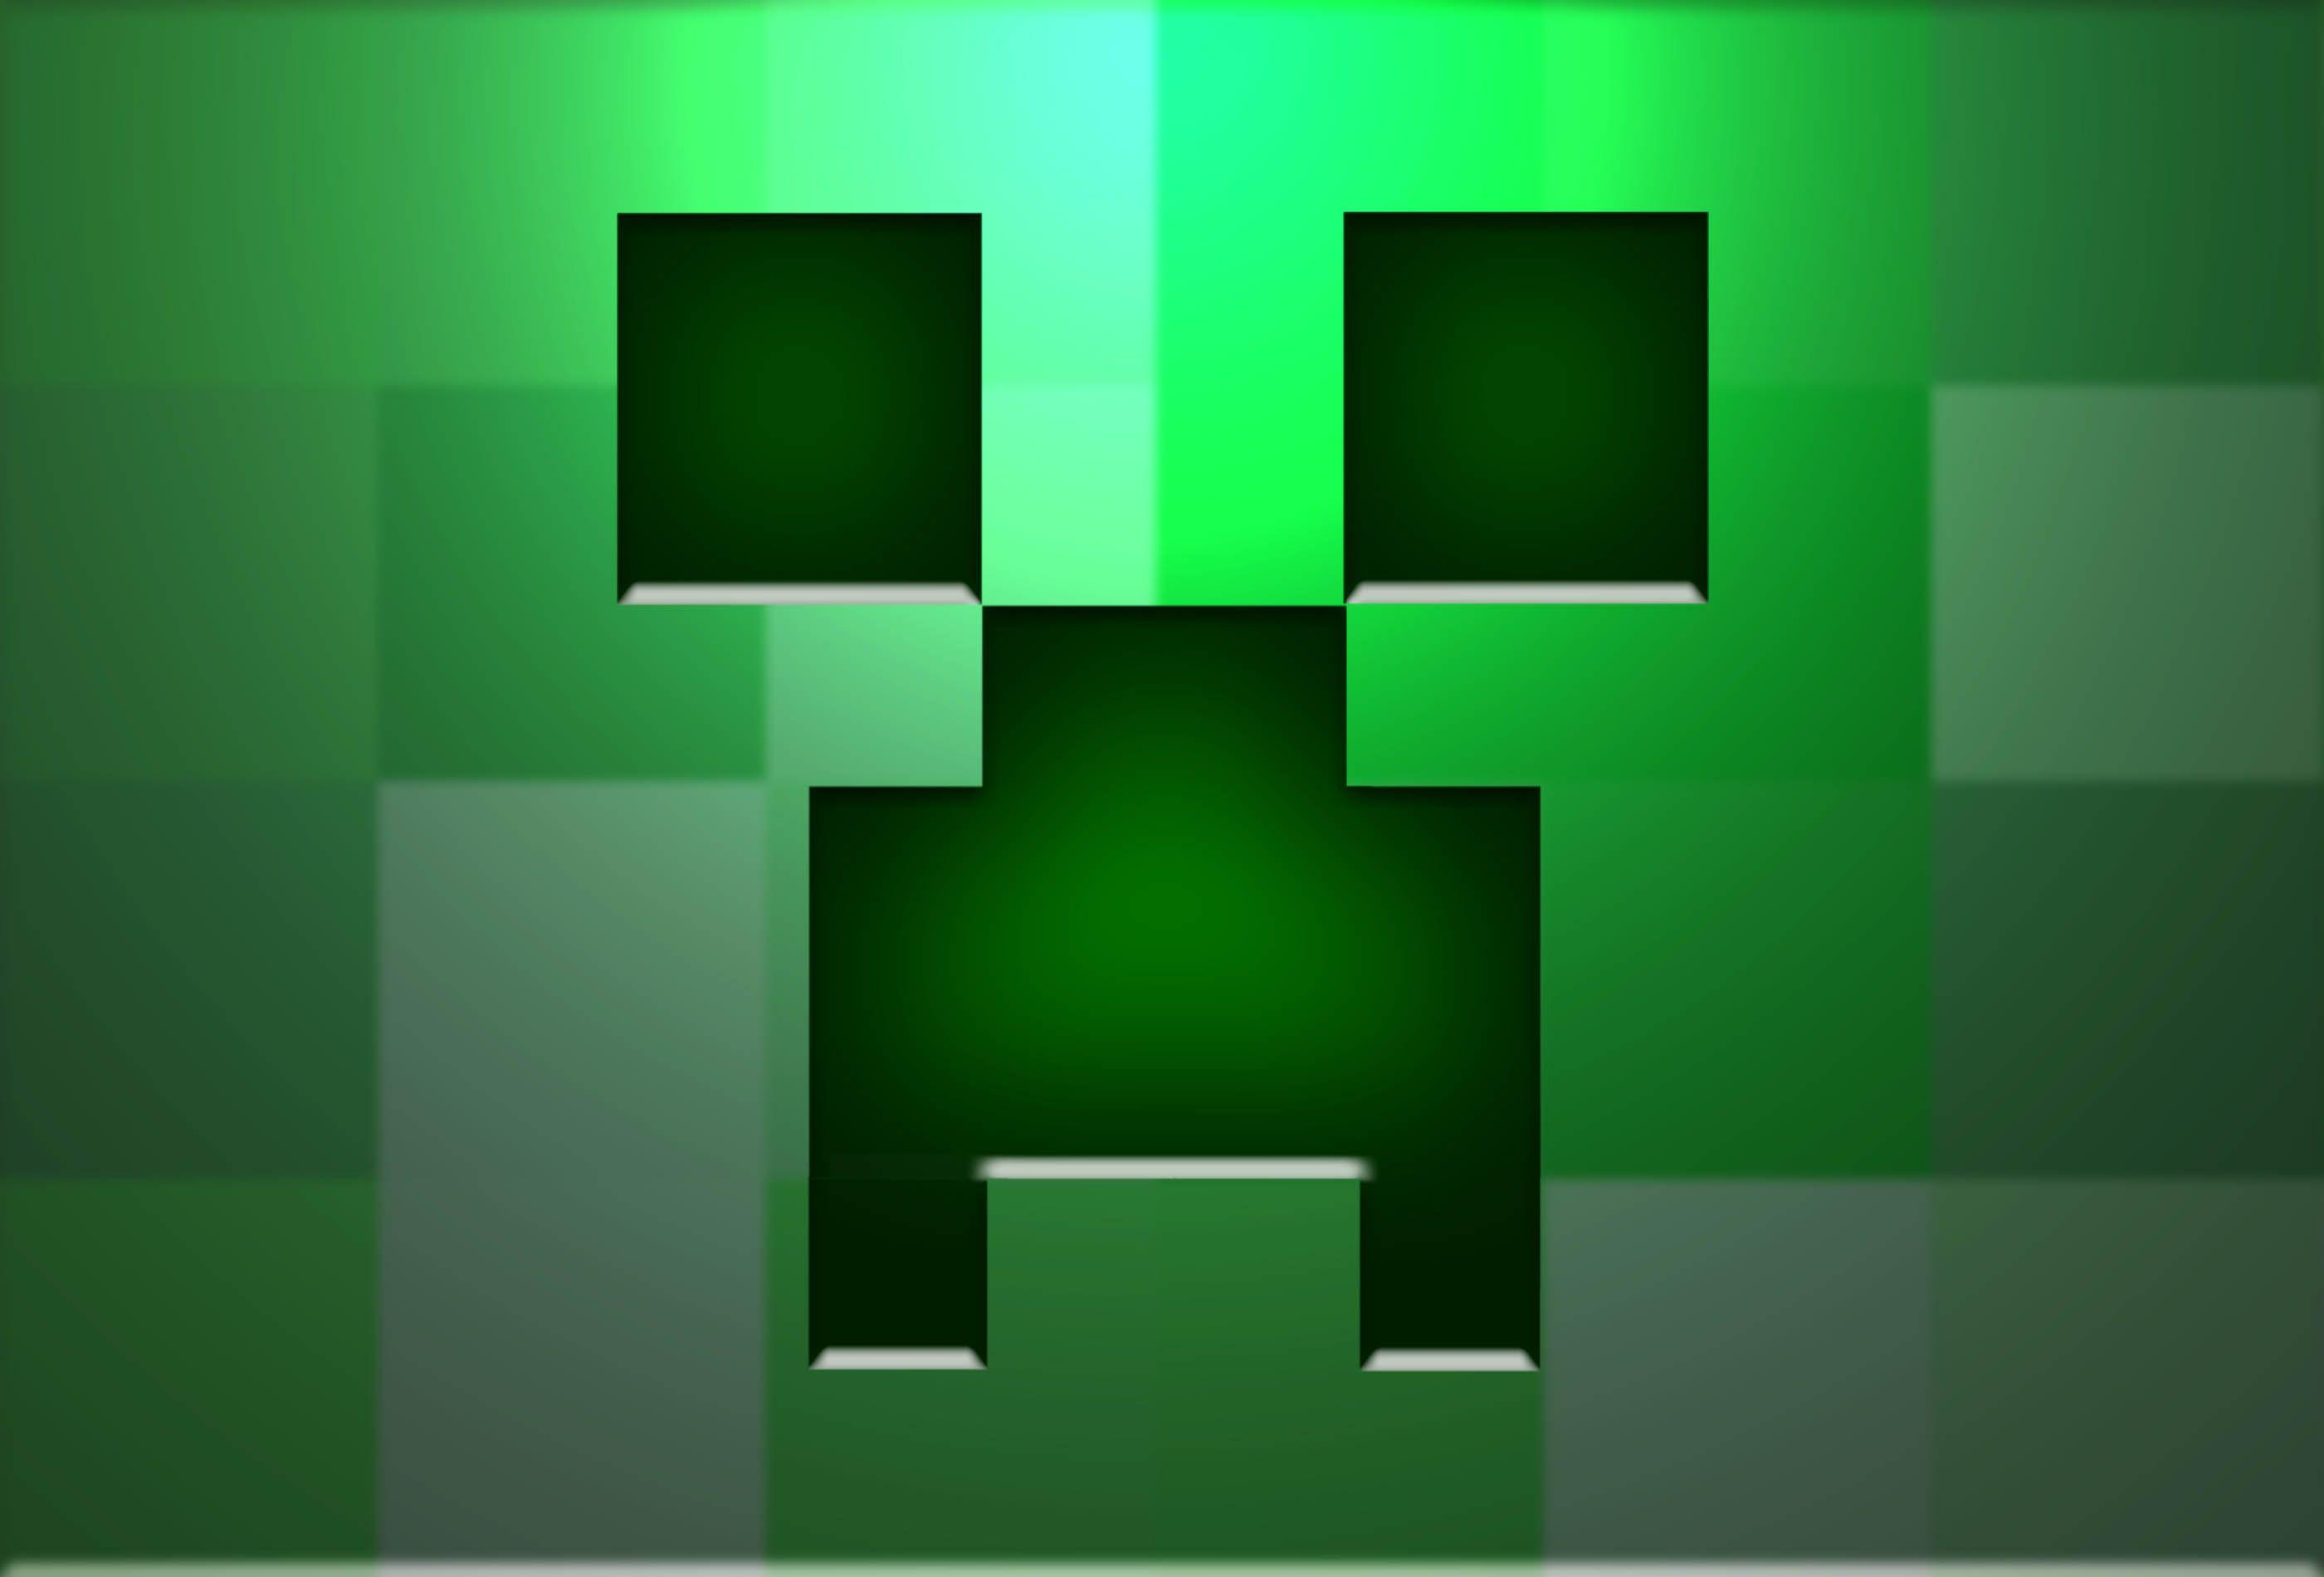 Minecraft Creeper Wallpapers #723 | Hdwidescreens.